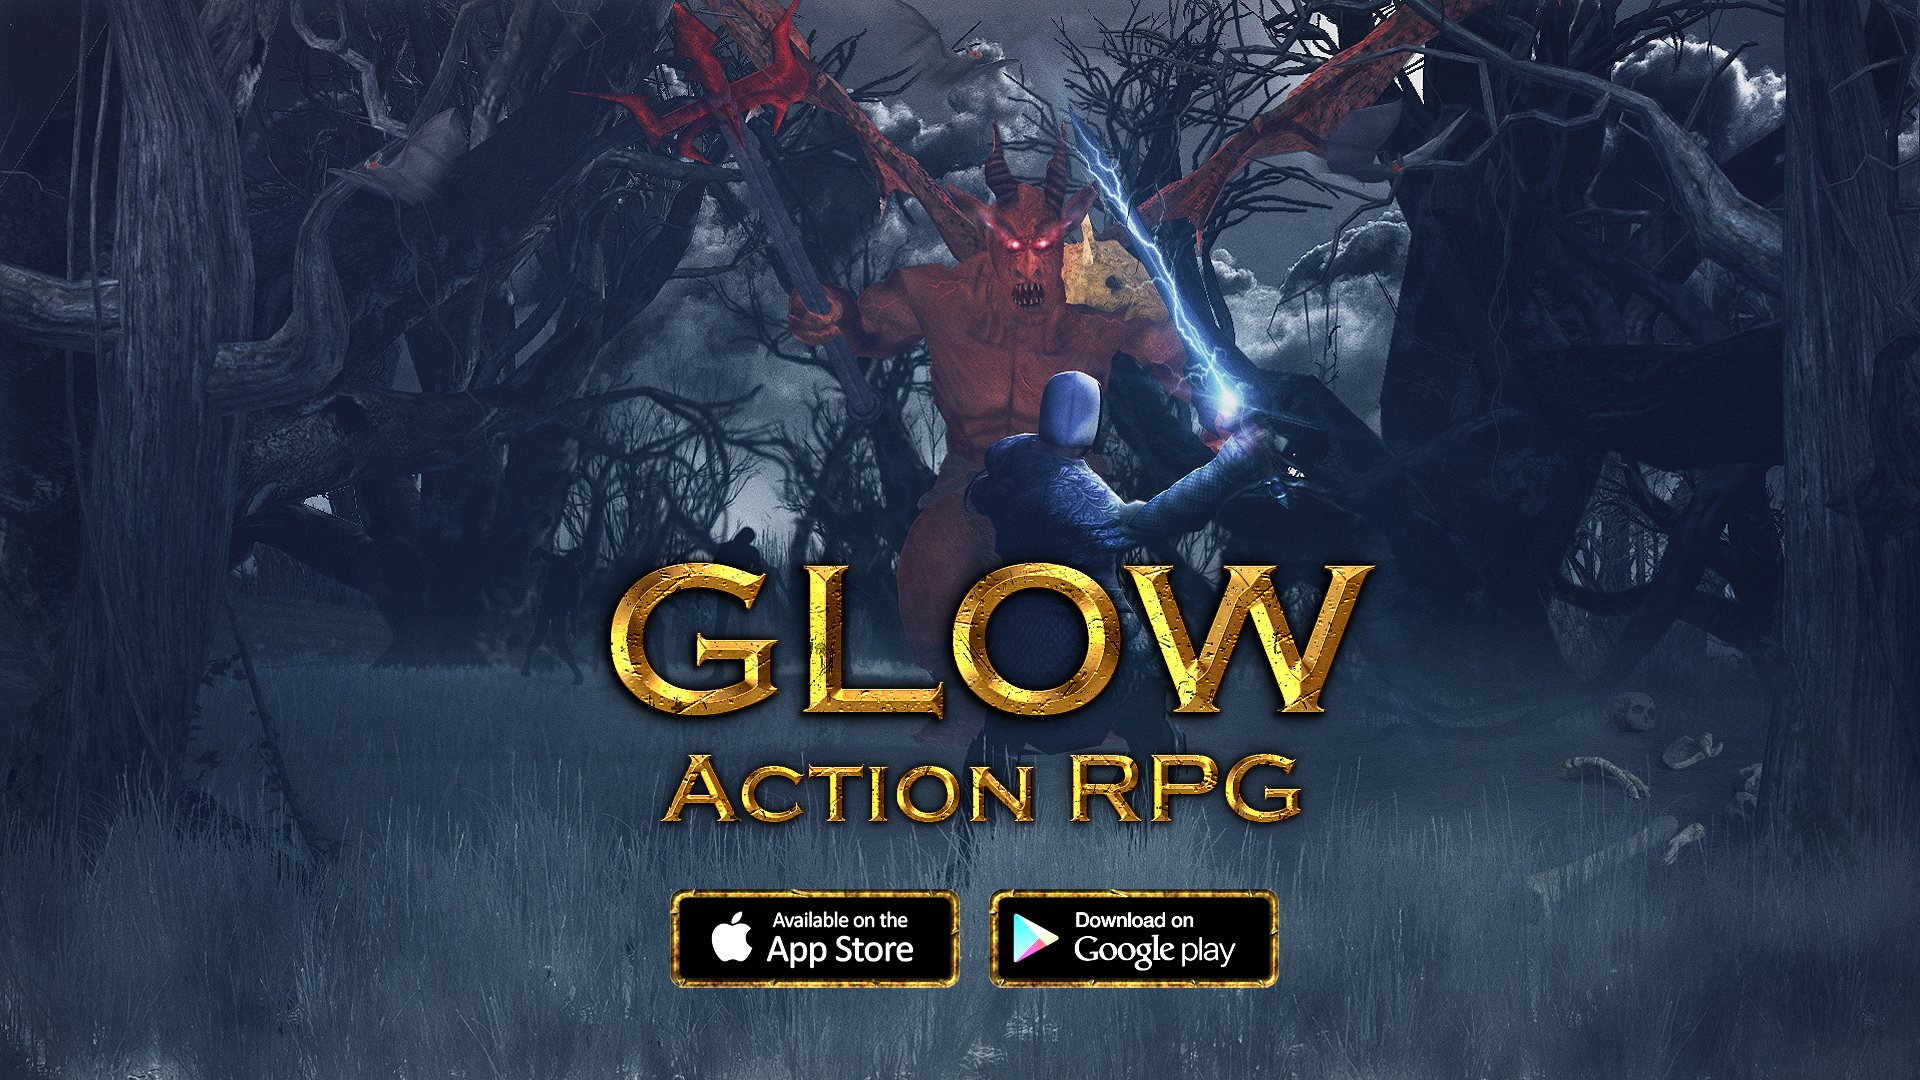 GLOW Mobile RPG Android and iOS Game